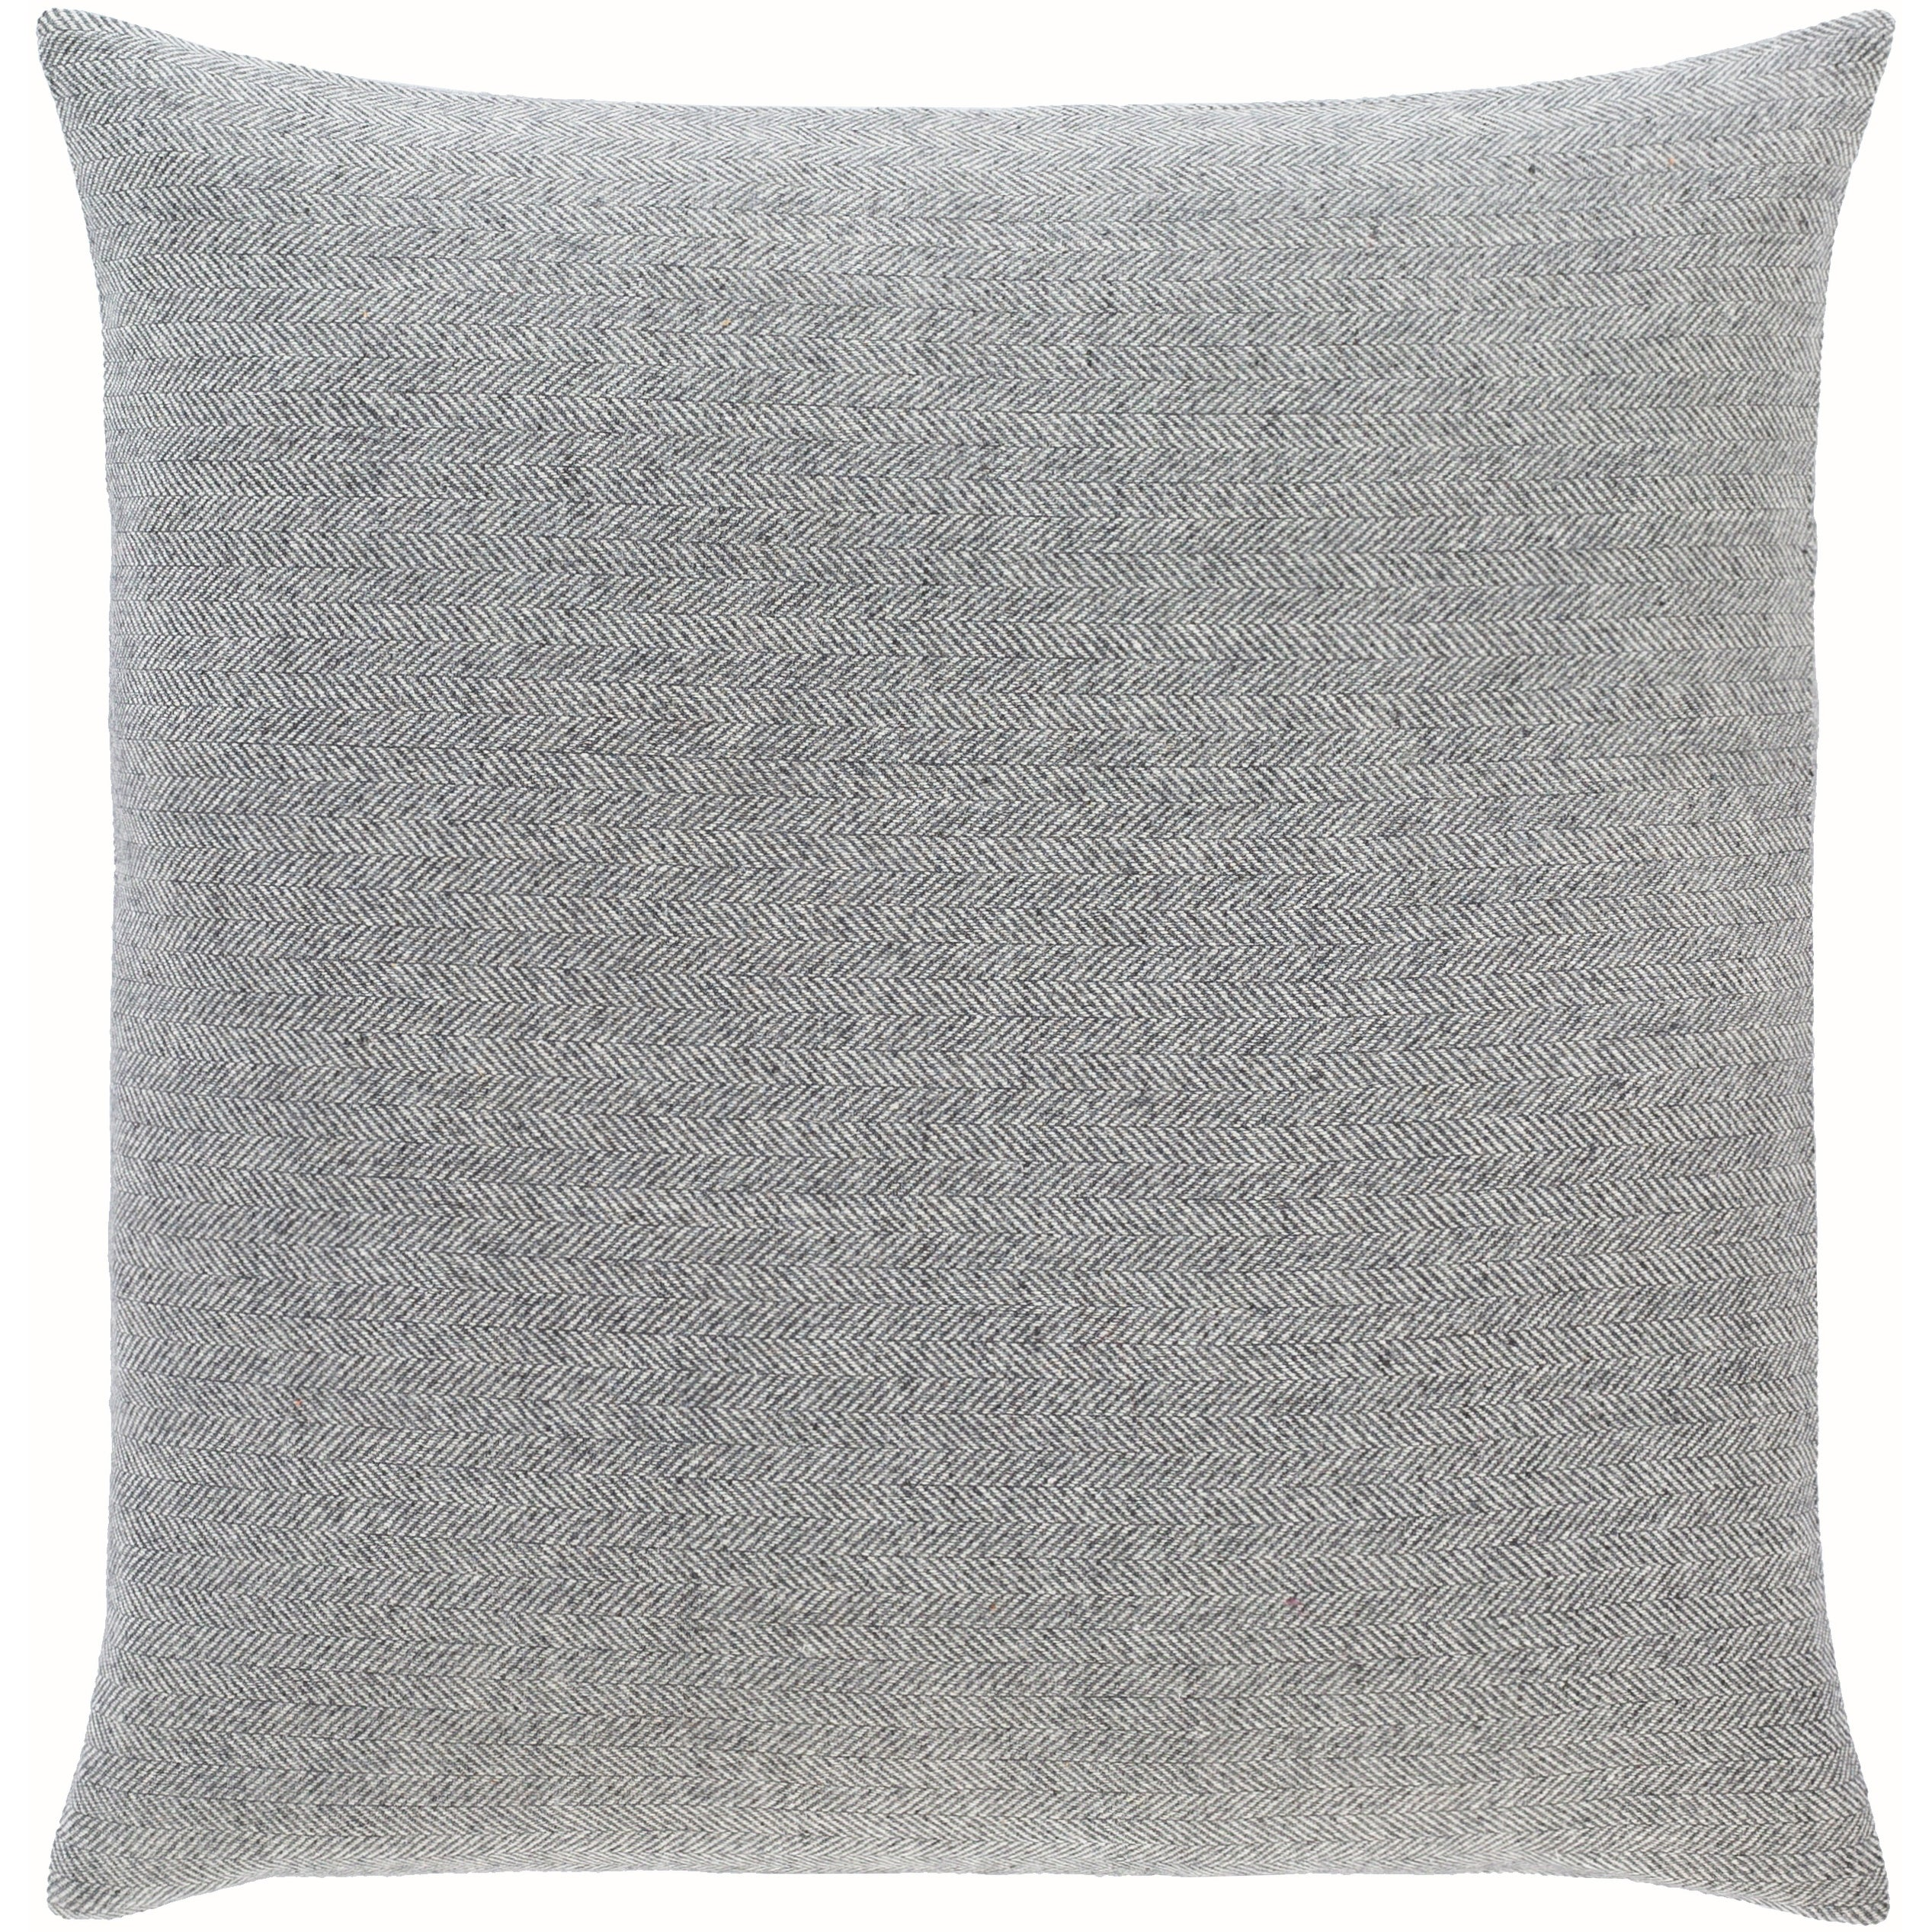 Breman Houndstooth Wool Blend Throw Pillow Overstock 31488267